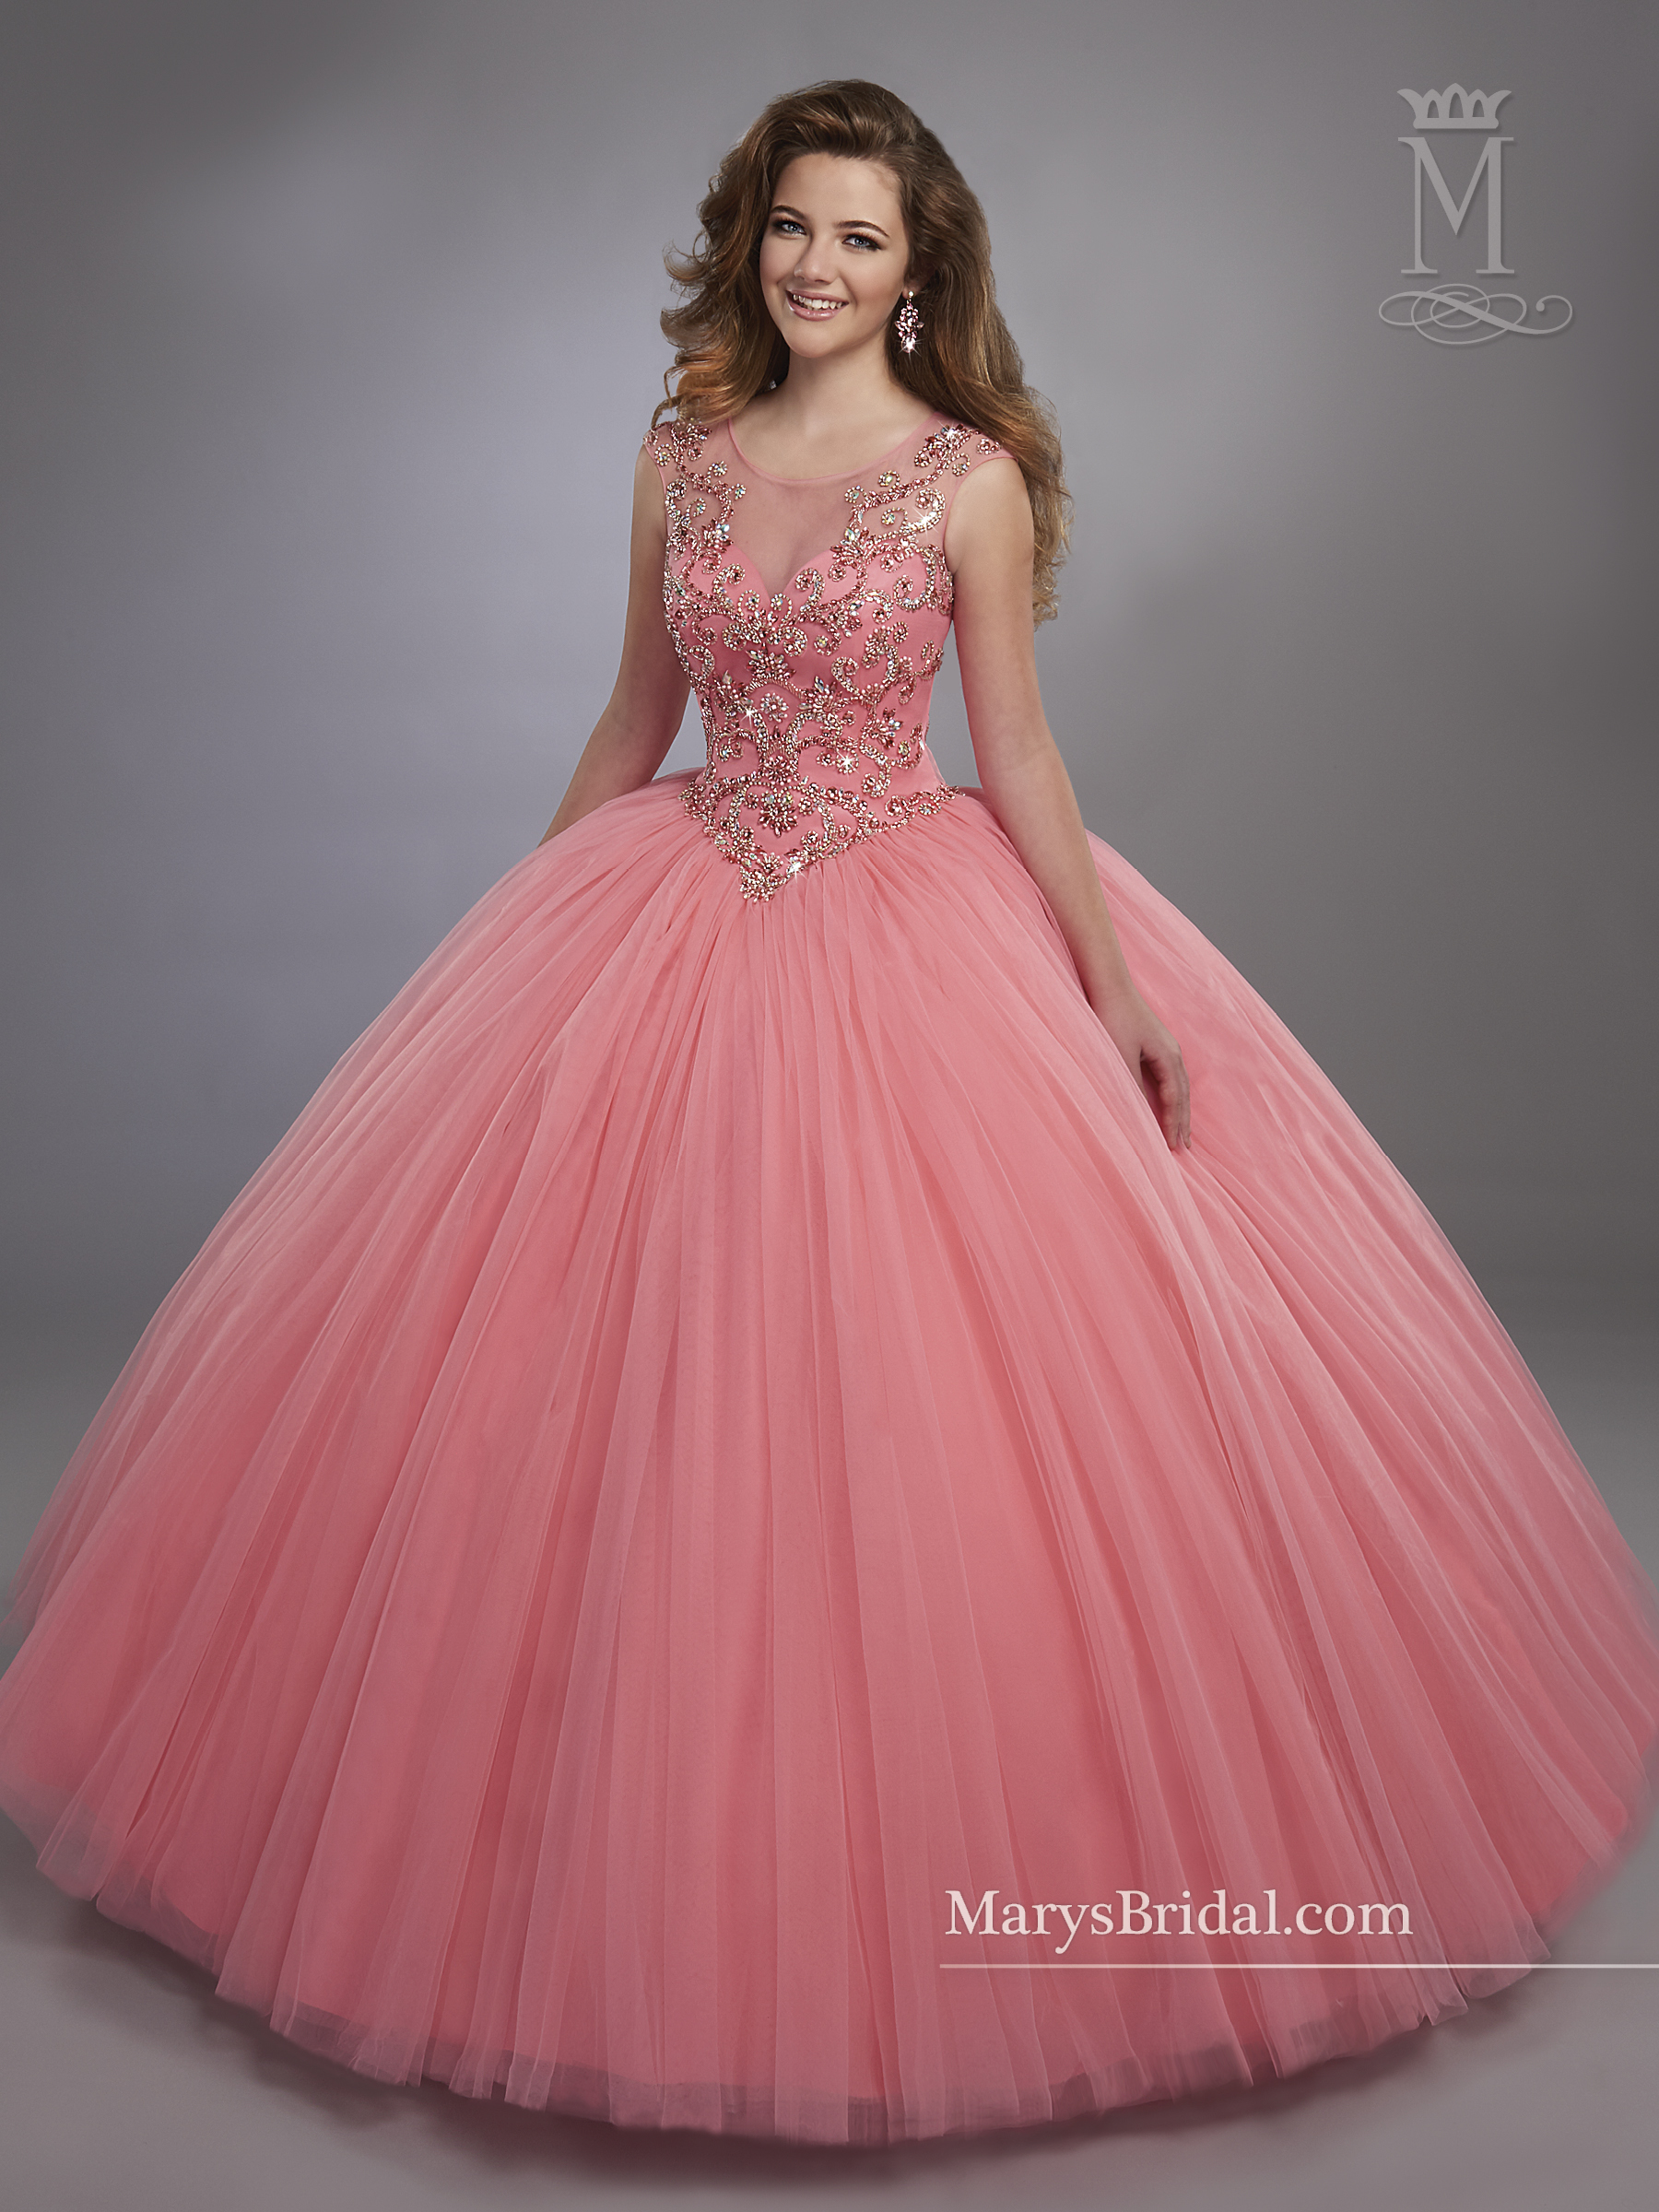 Marys Quinceanera Dresses | Style - 4762 in Calypso, Royal, or White ...